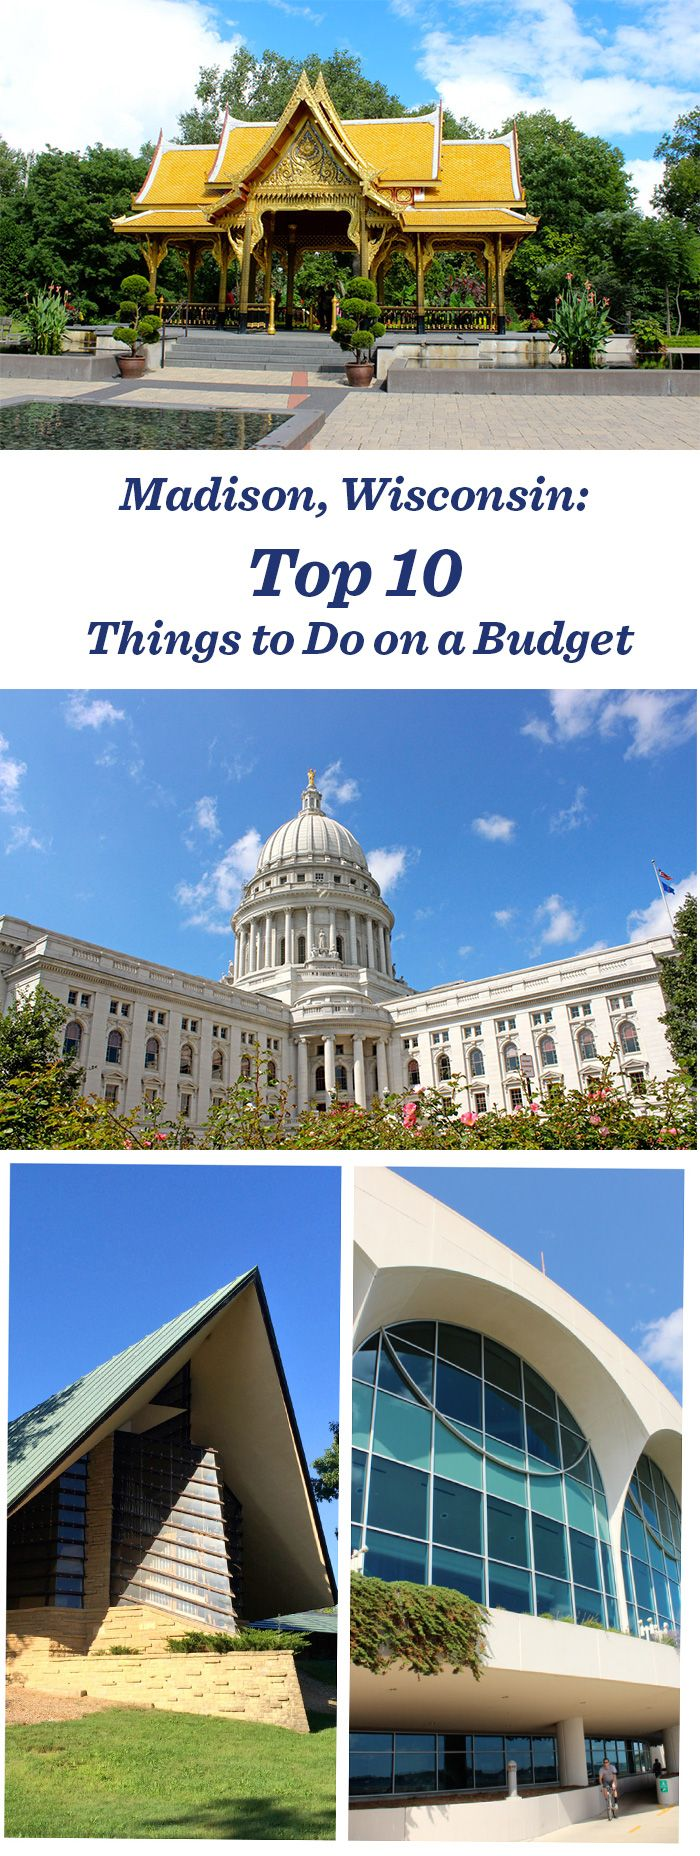 10 great things to do on a budget in Madison, Wisconsin: http://www.midwestliving.com/blog/travel/top-10-things-to-do-on-a-budget-madison/